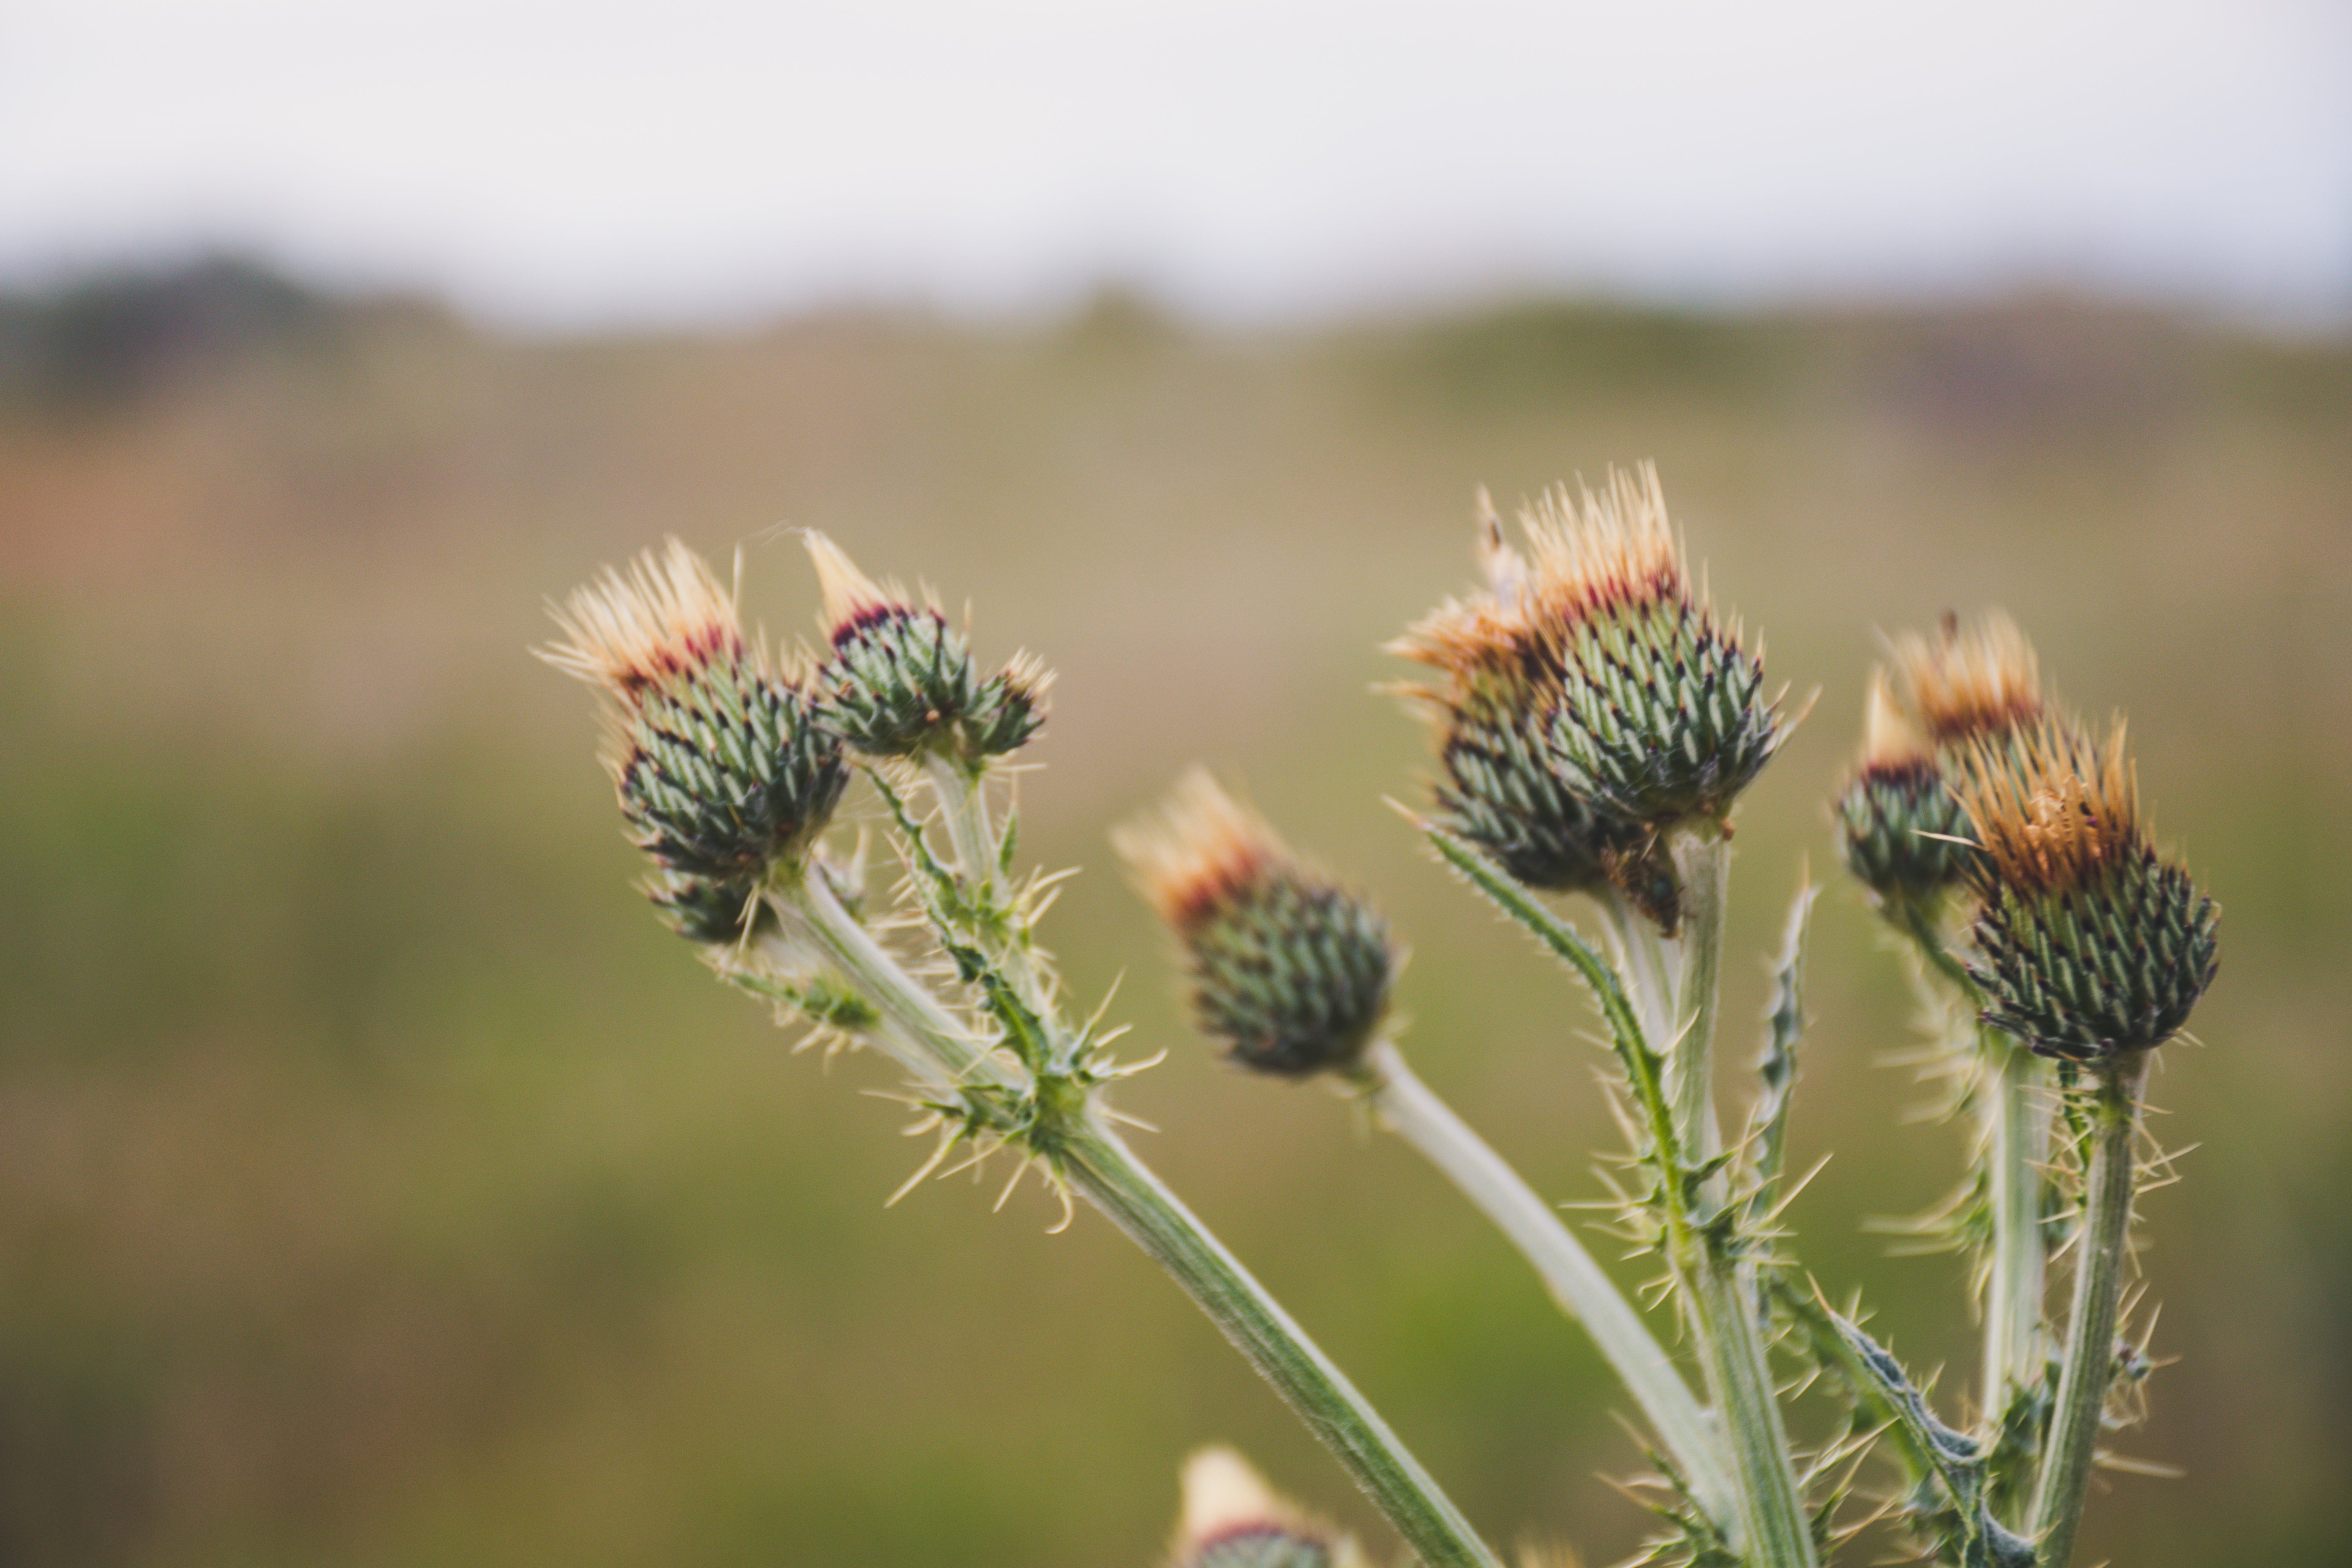 Selective Focus Photo of Green Thistle Buds at Daytime